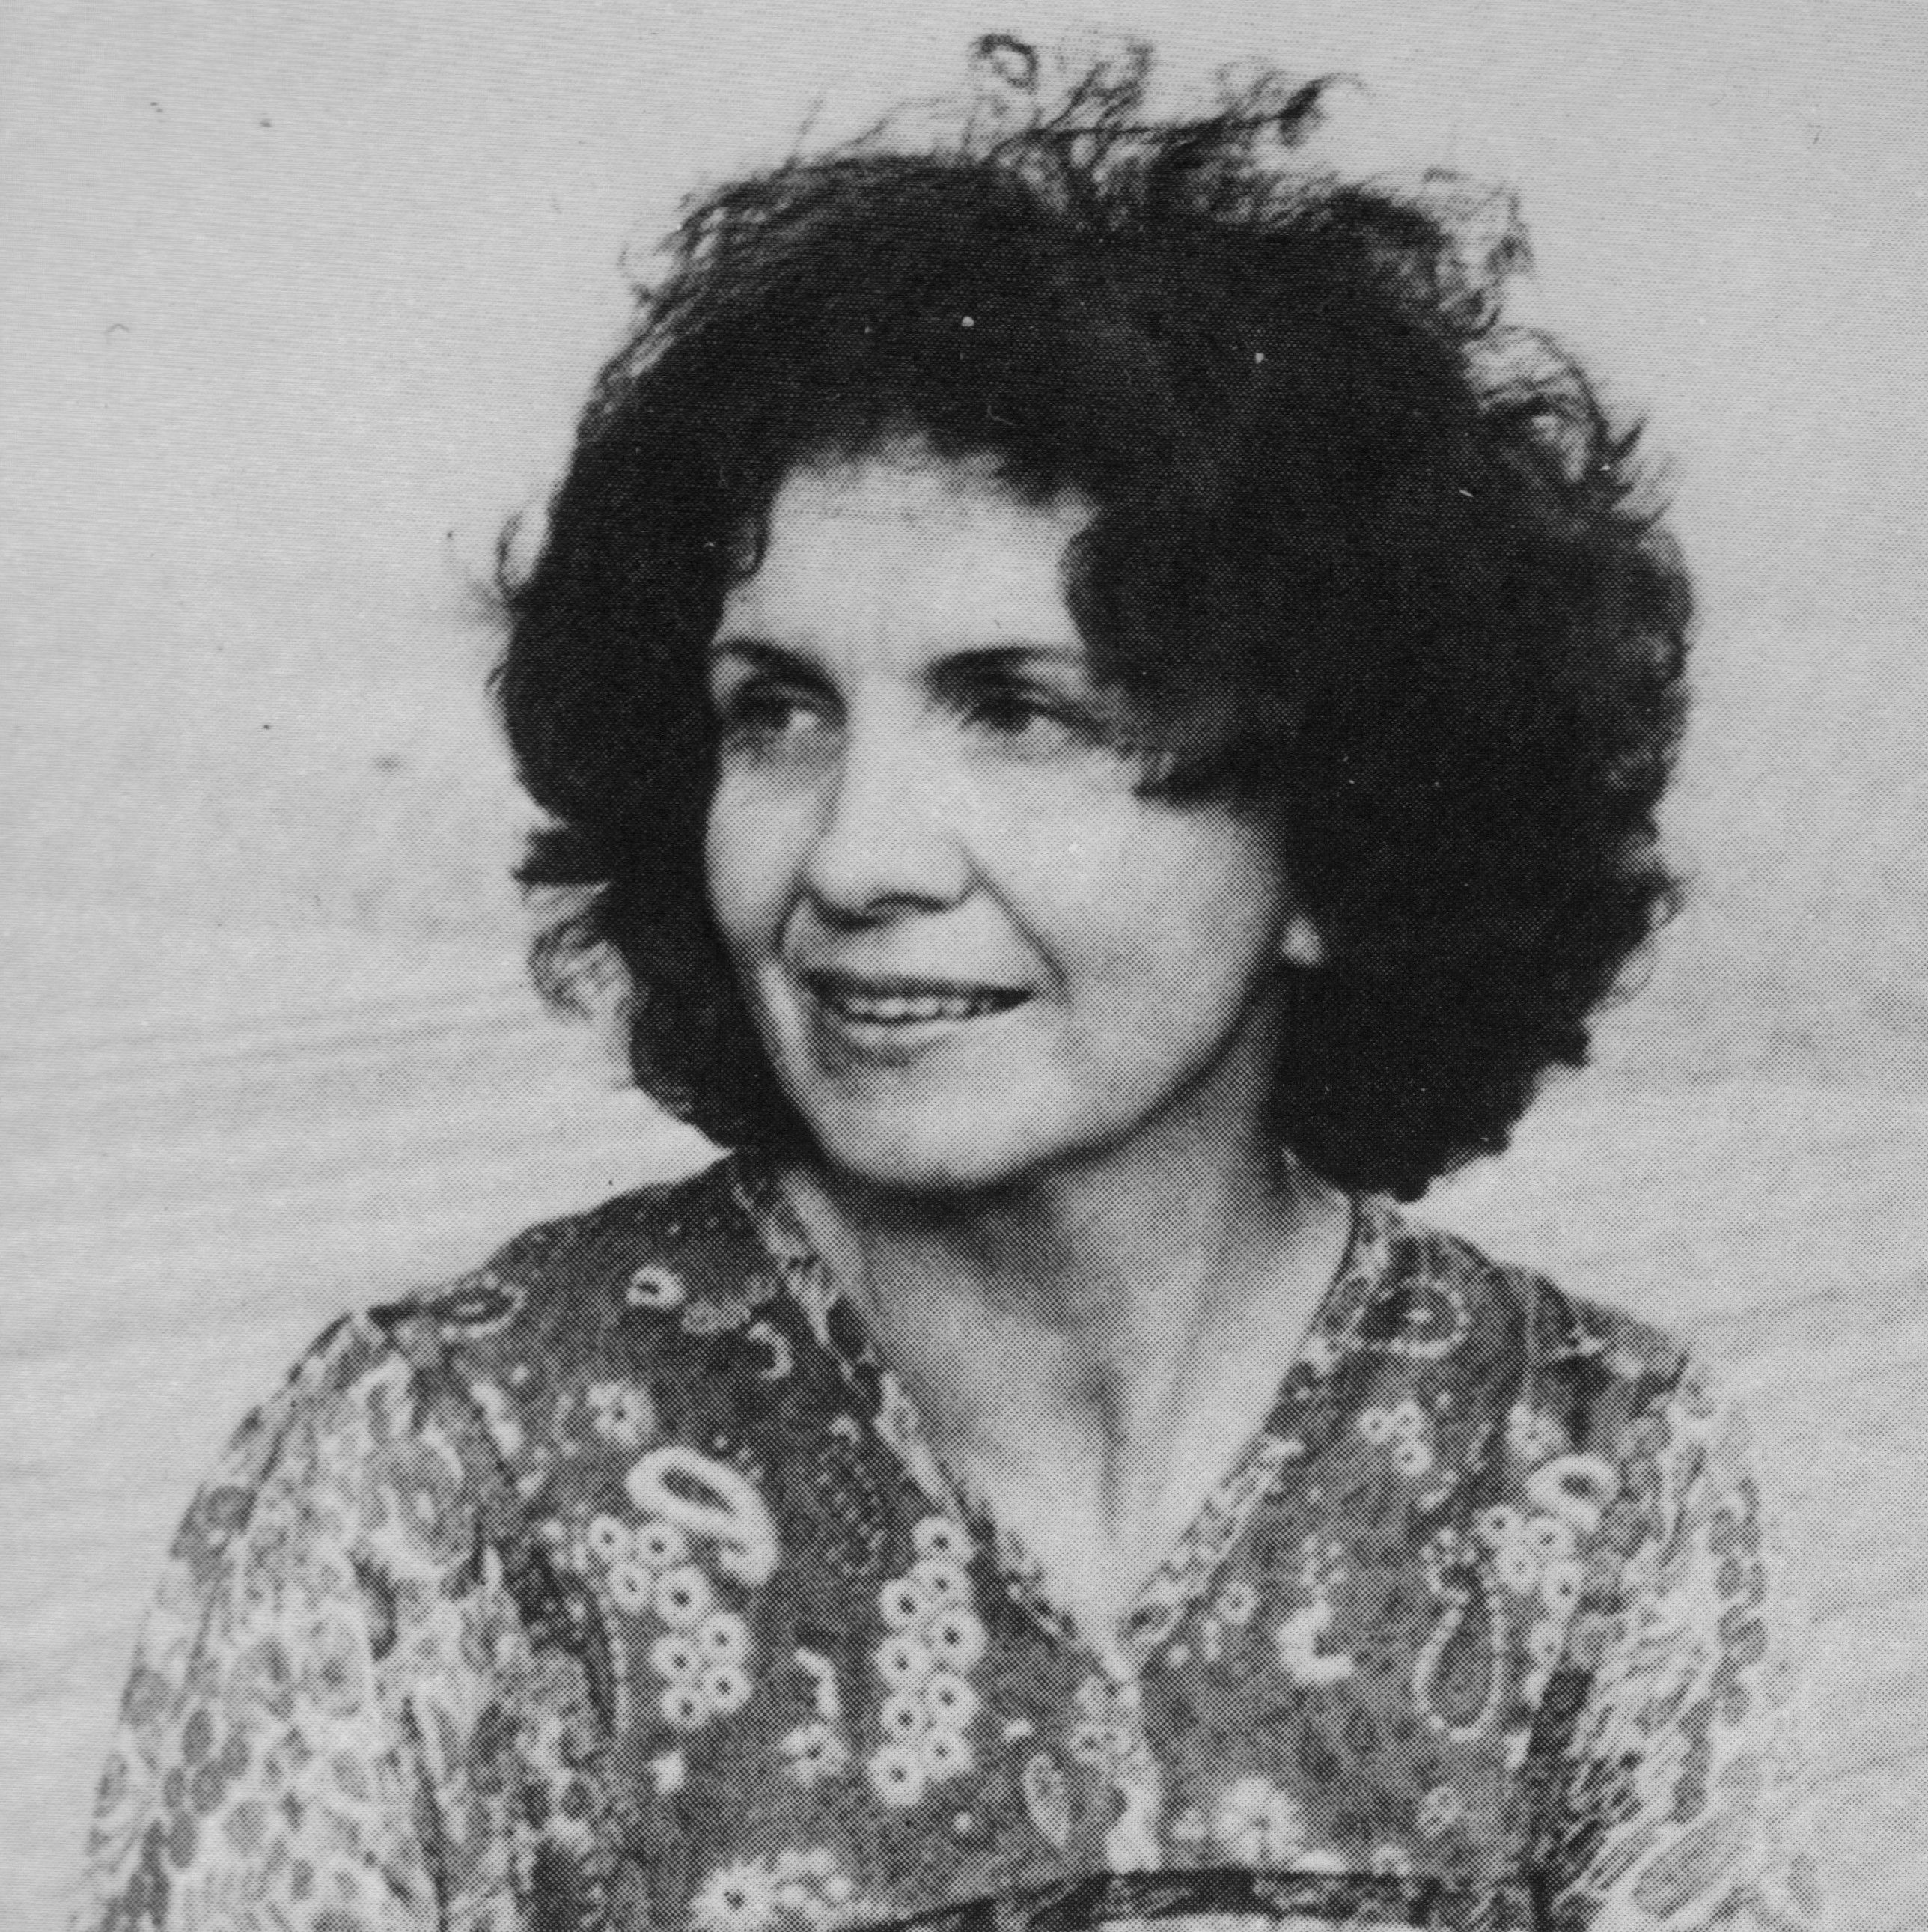 alice munros short stories and landscape Discussion walker brothers cowboy alice munro - 1931 in ontario, canada nobel prize for literature in 2013 dance of the happy shades (1968) between 'what we know and what we do not yet know' - alice munro's walker brothers cowboy.